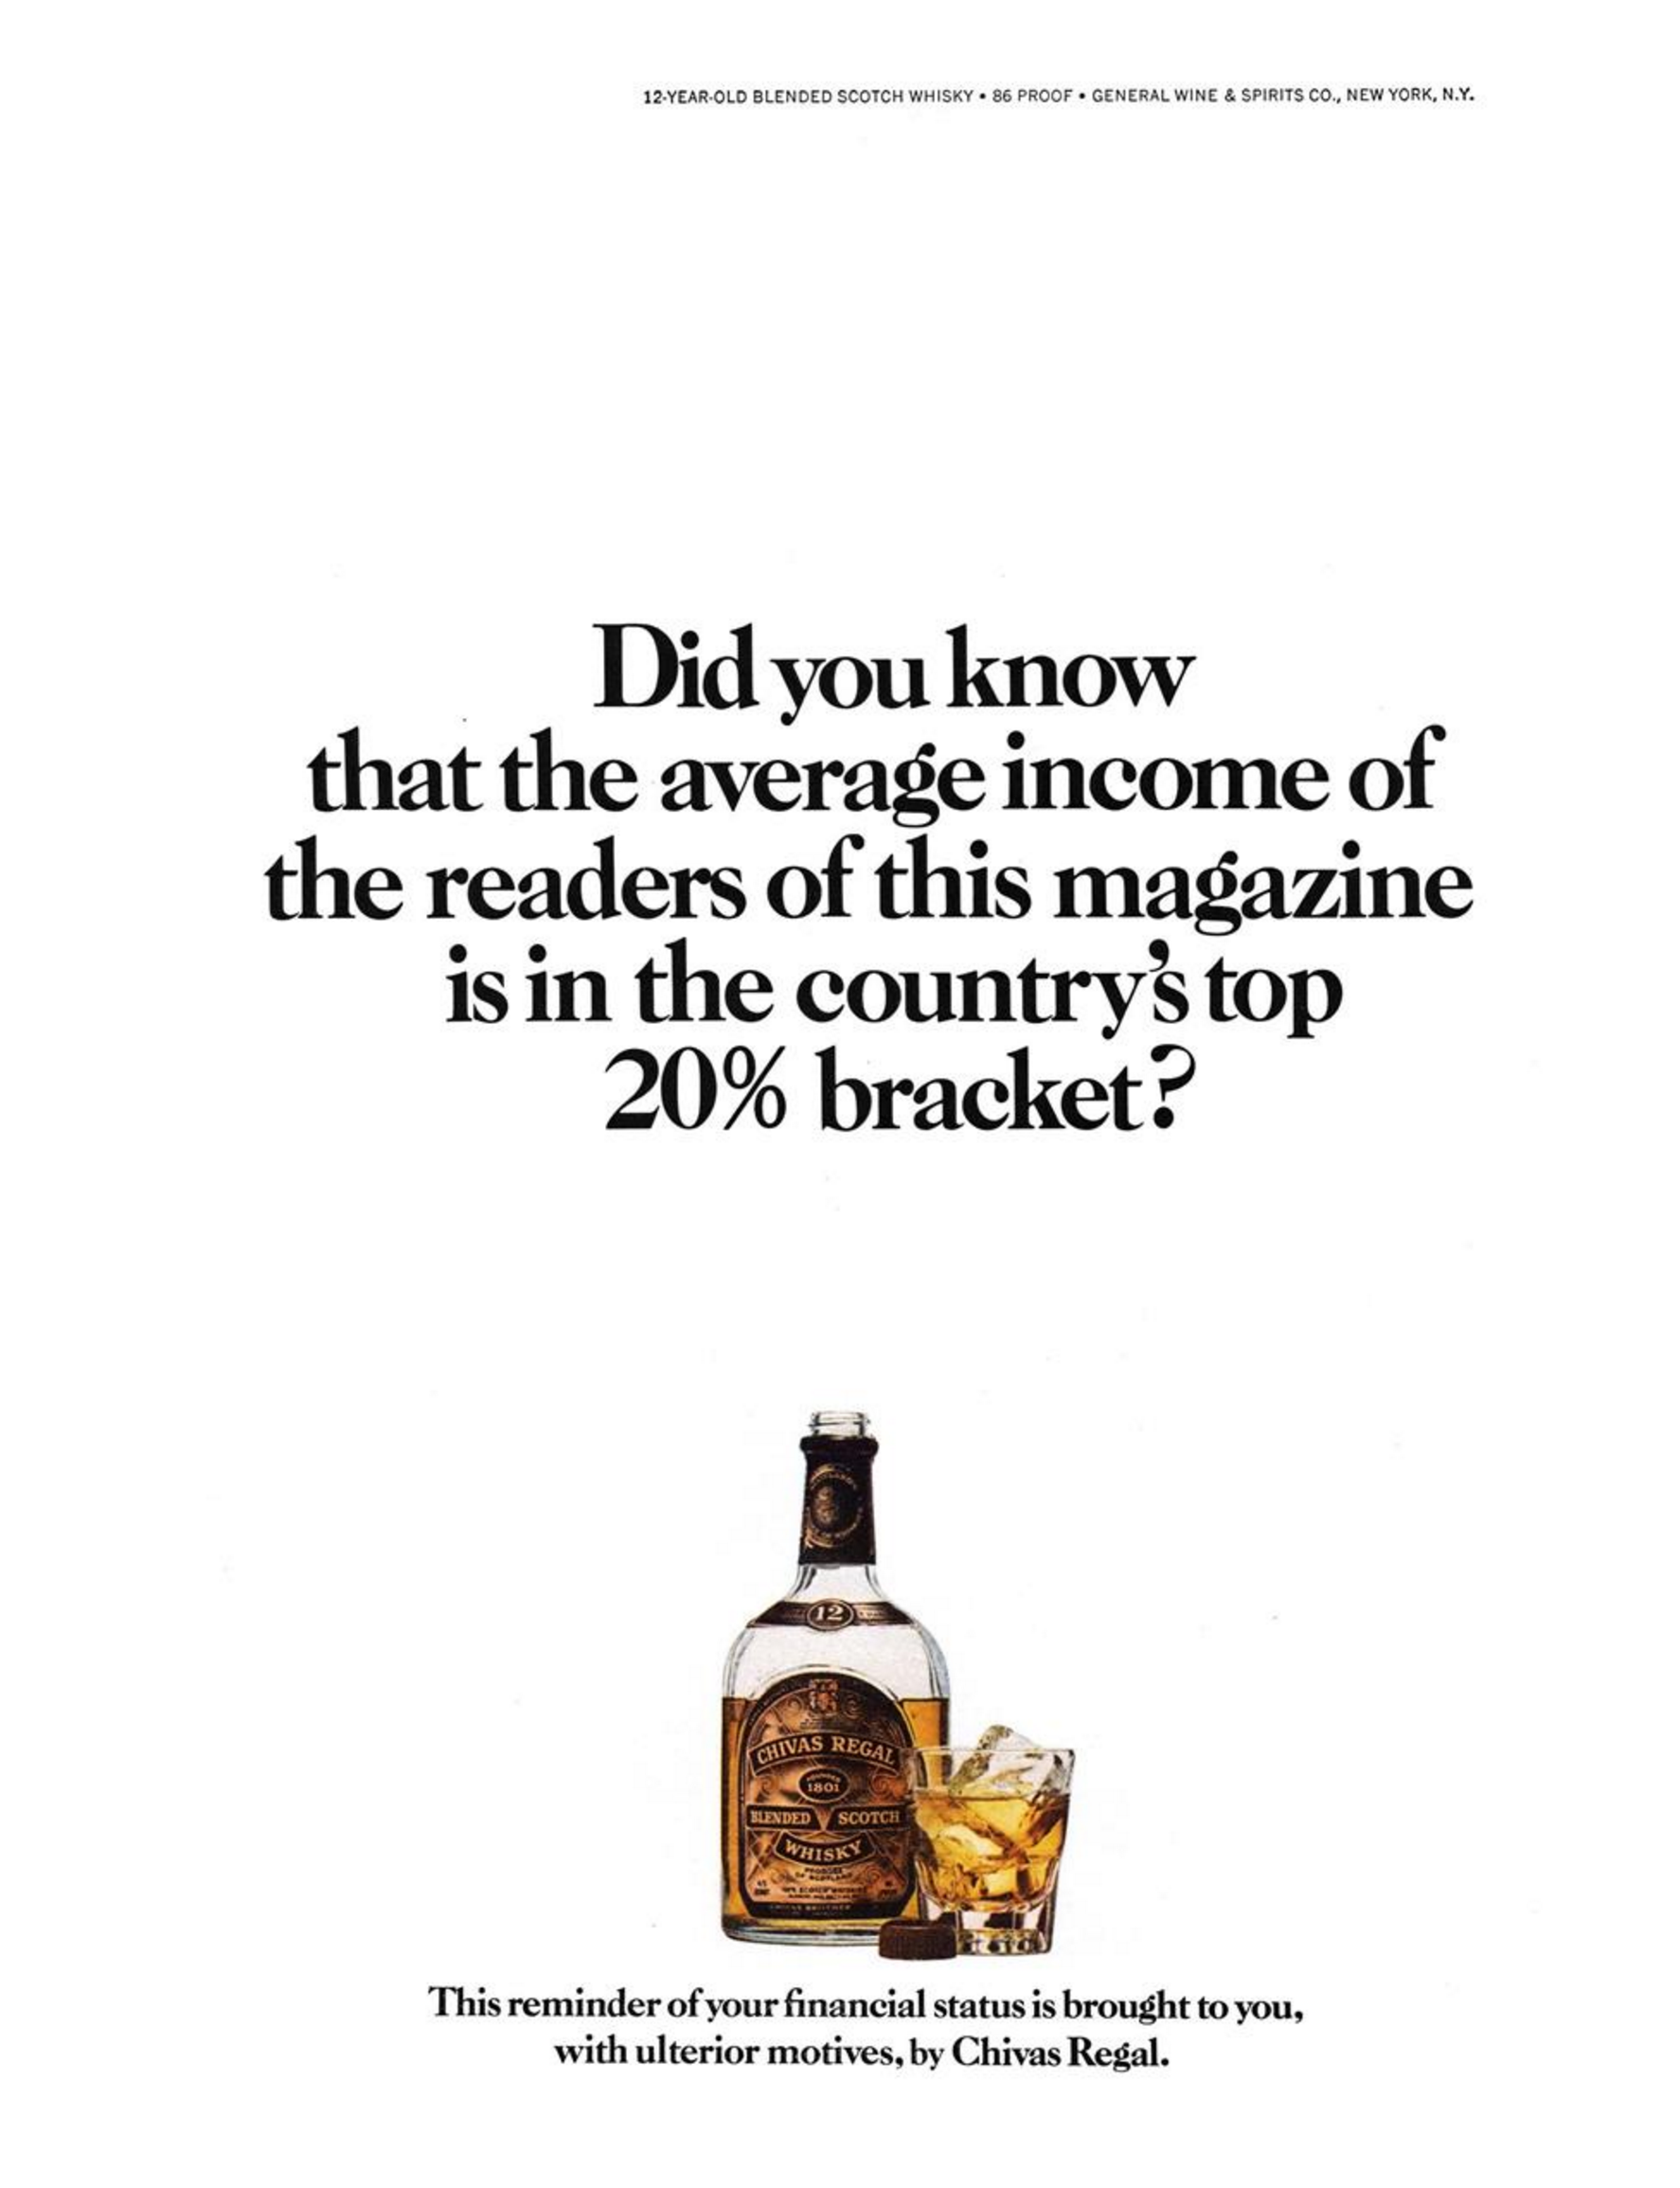 8. 'Did You Know' Chivas Regal, DDB NY (Esquire).png